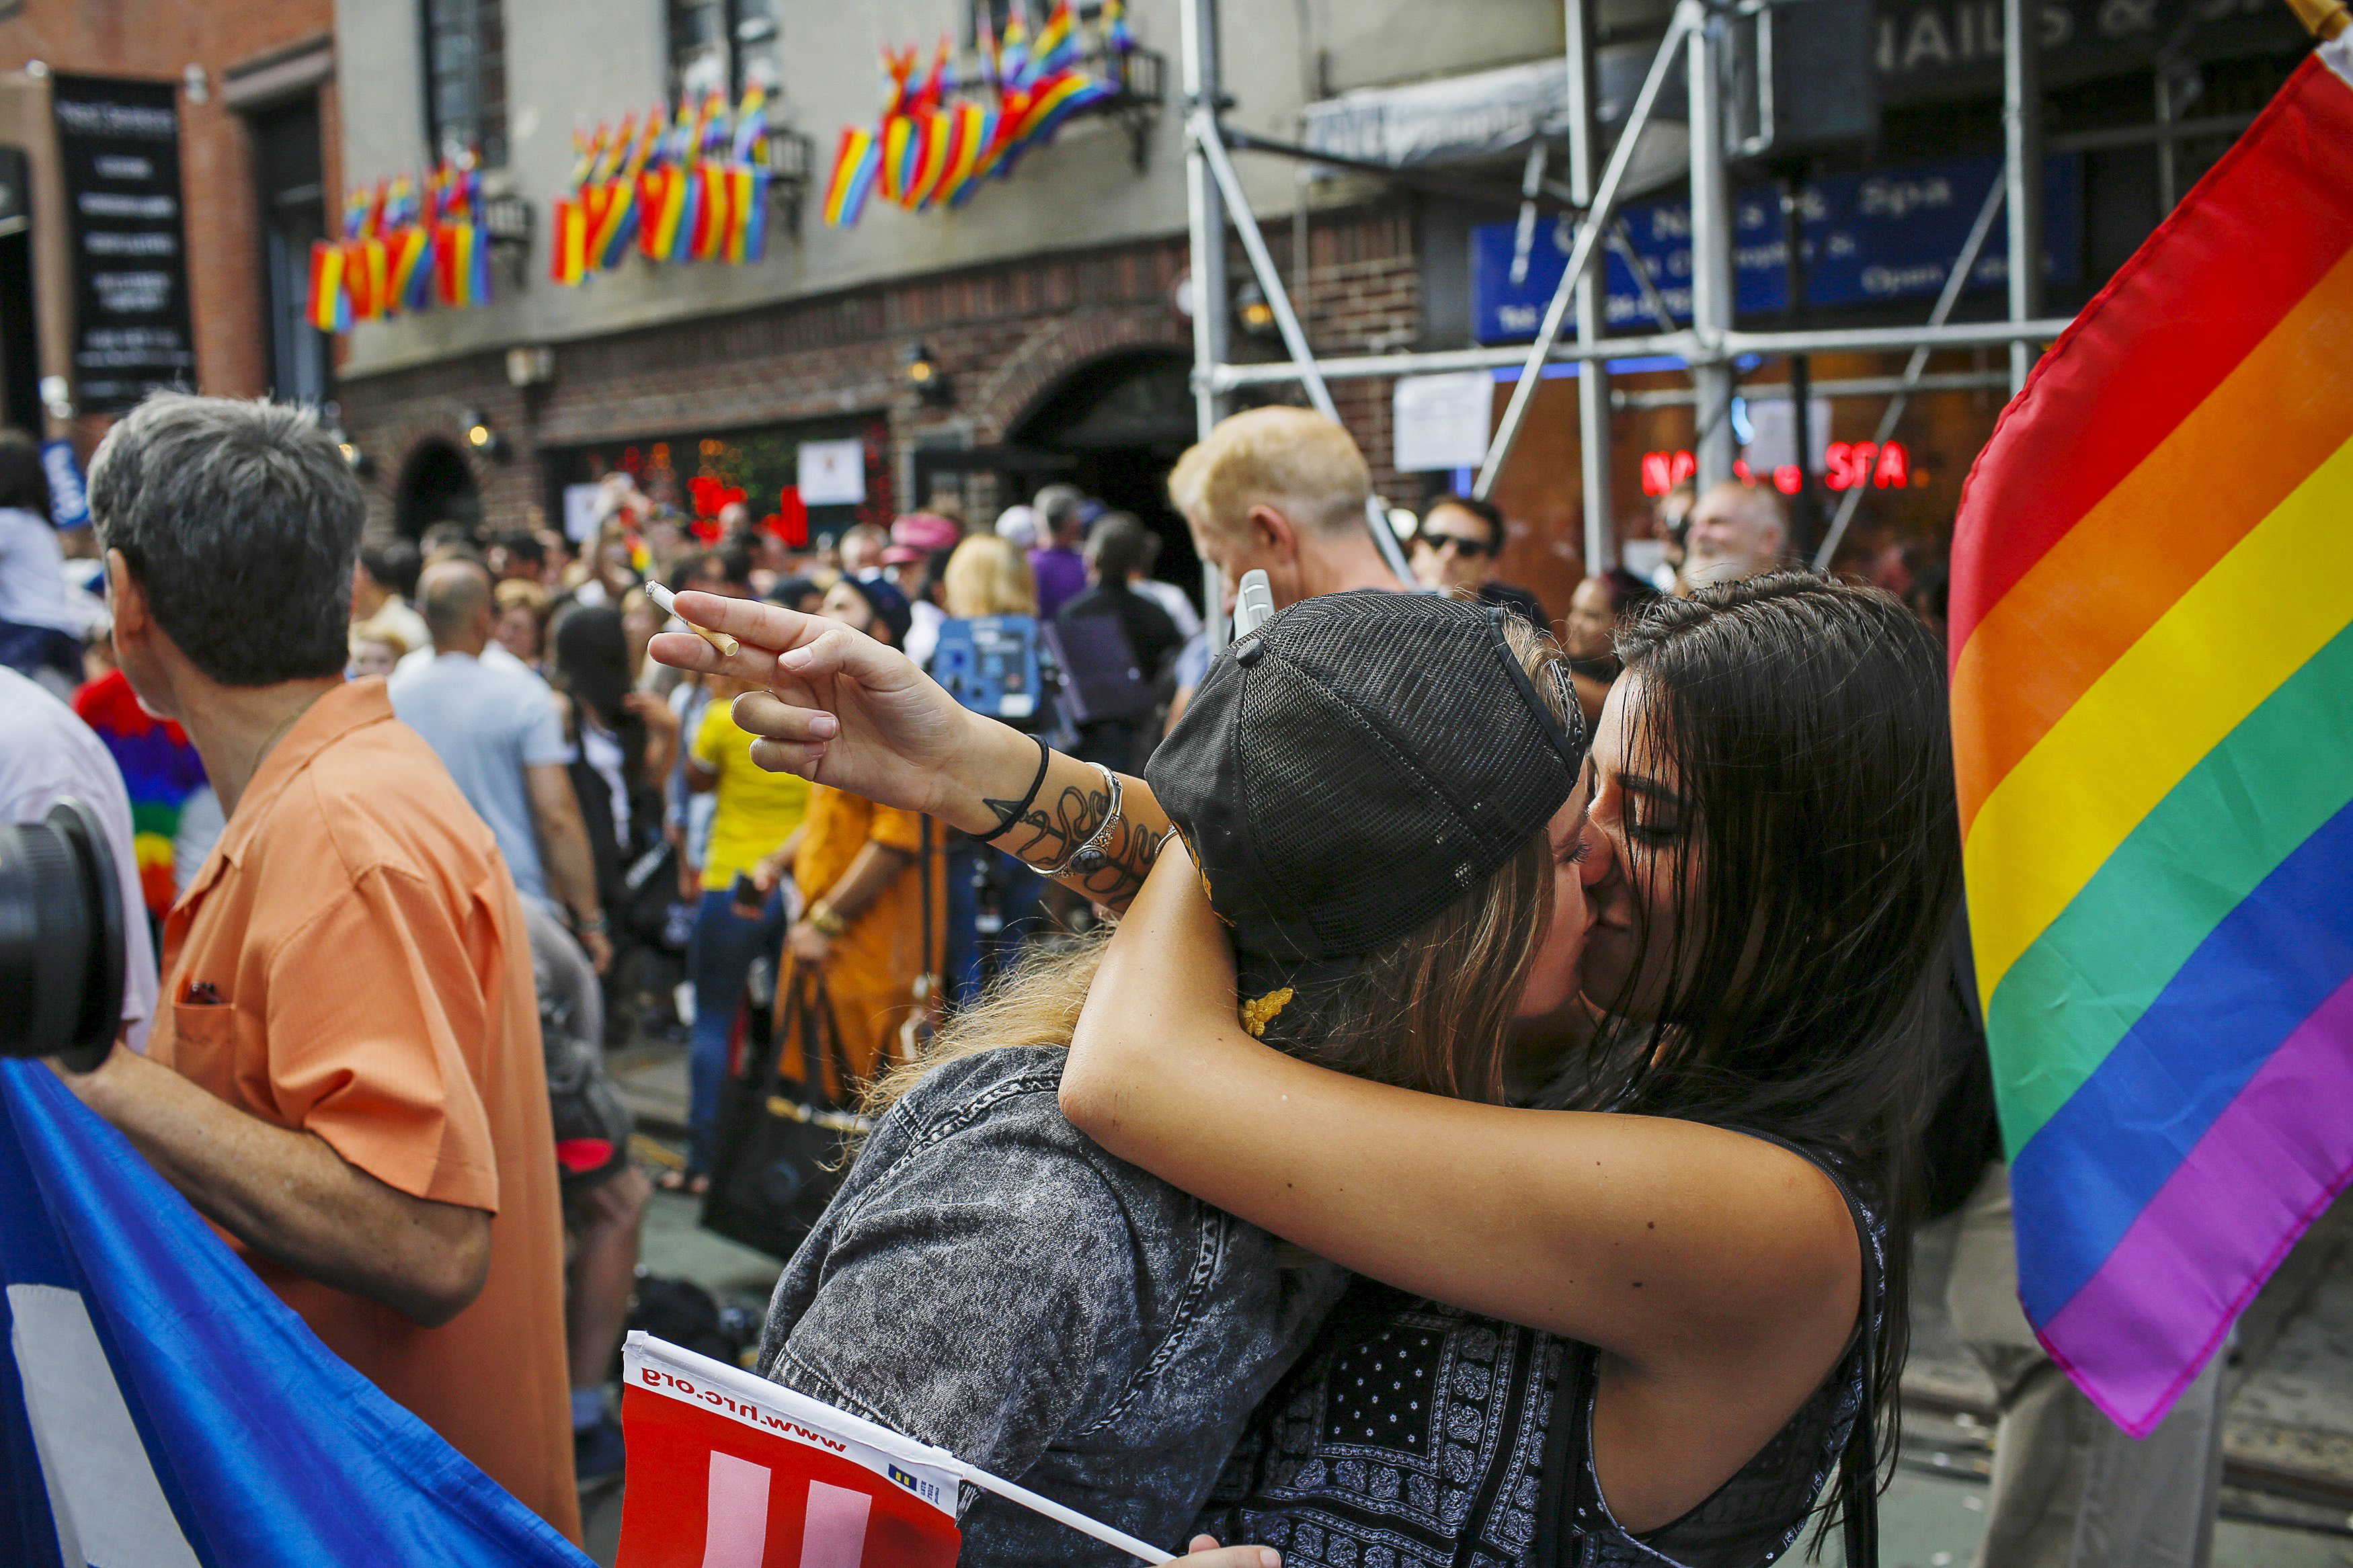 Women kiss each other as people celebrate outside the Stonewall Inn in the West Village neighborhood of New York June 26, 2015.